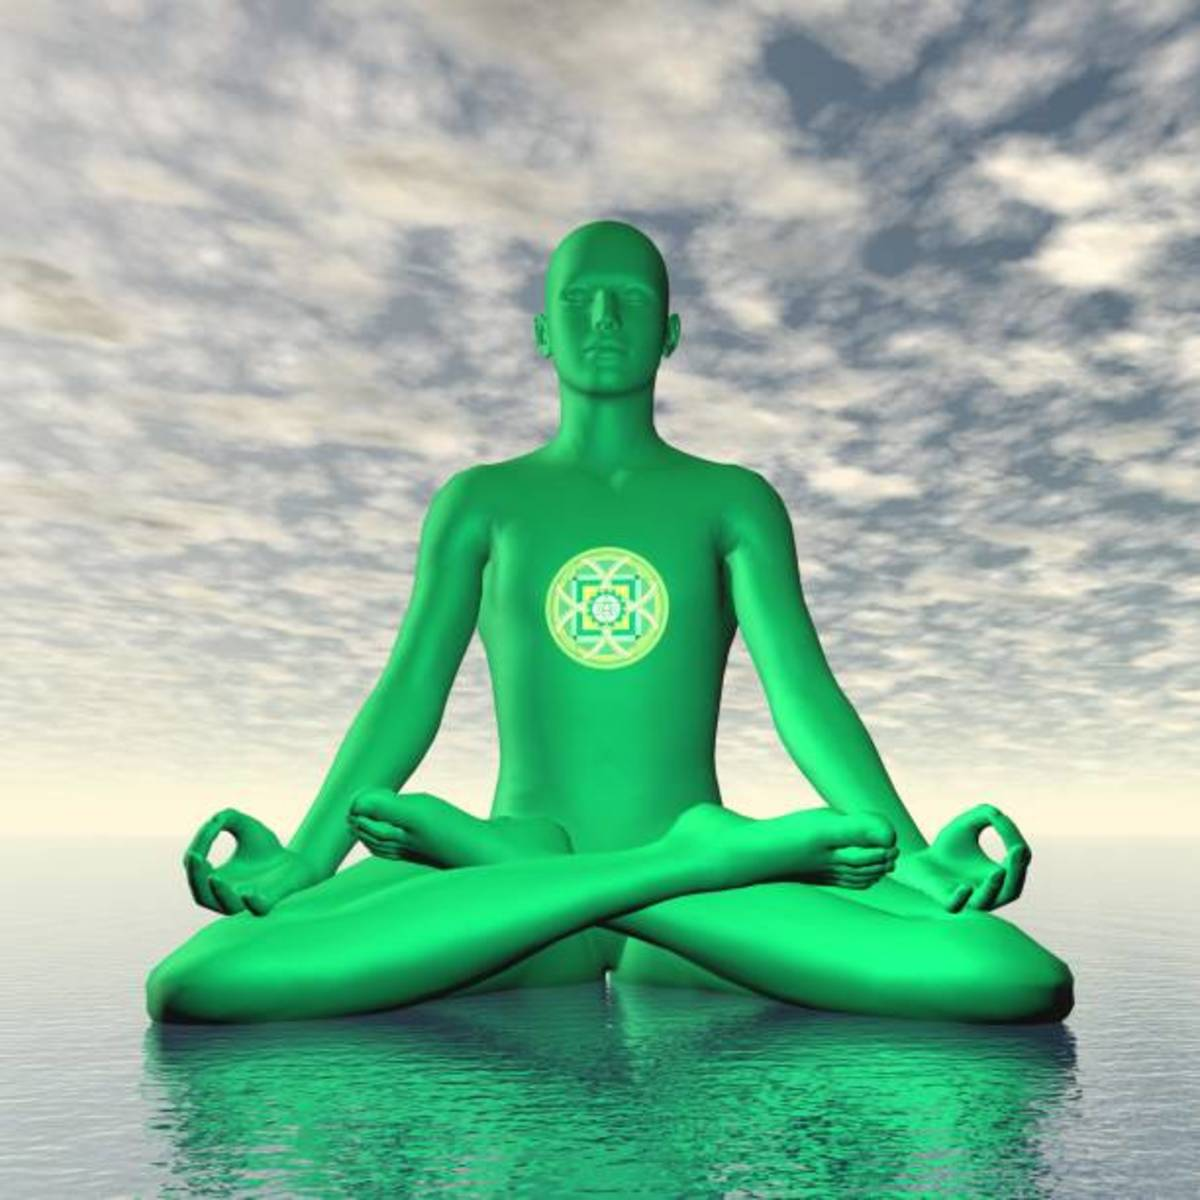 Padmasana is the recommended pose for meditation.